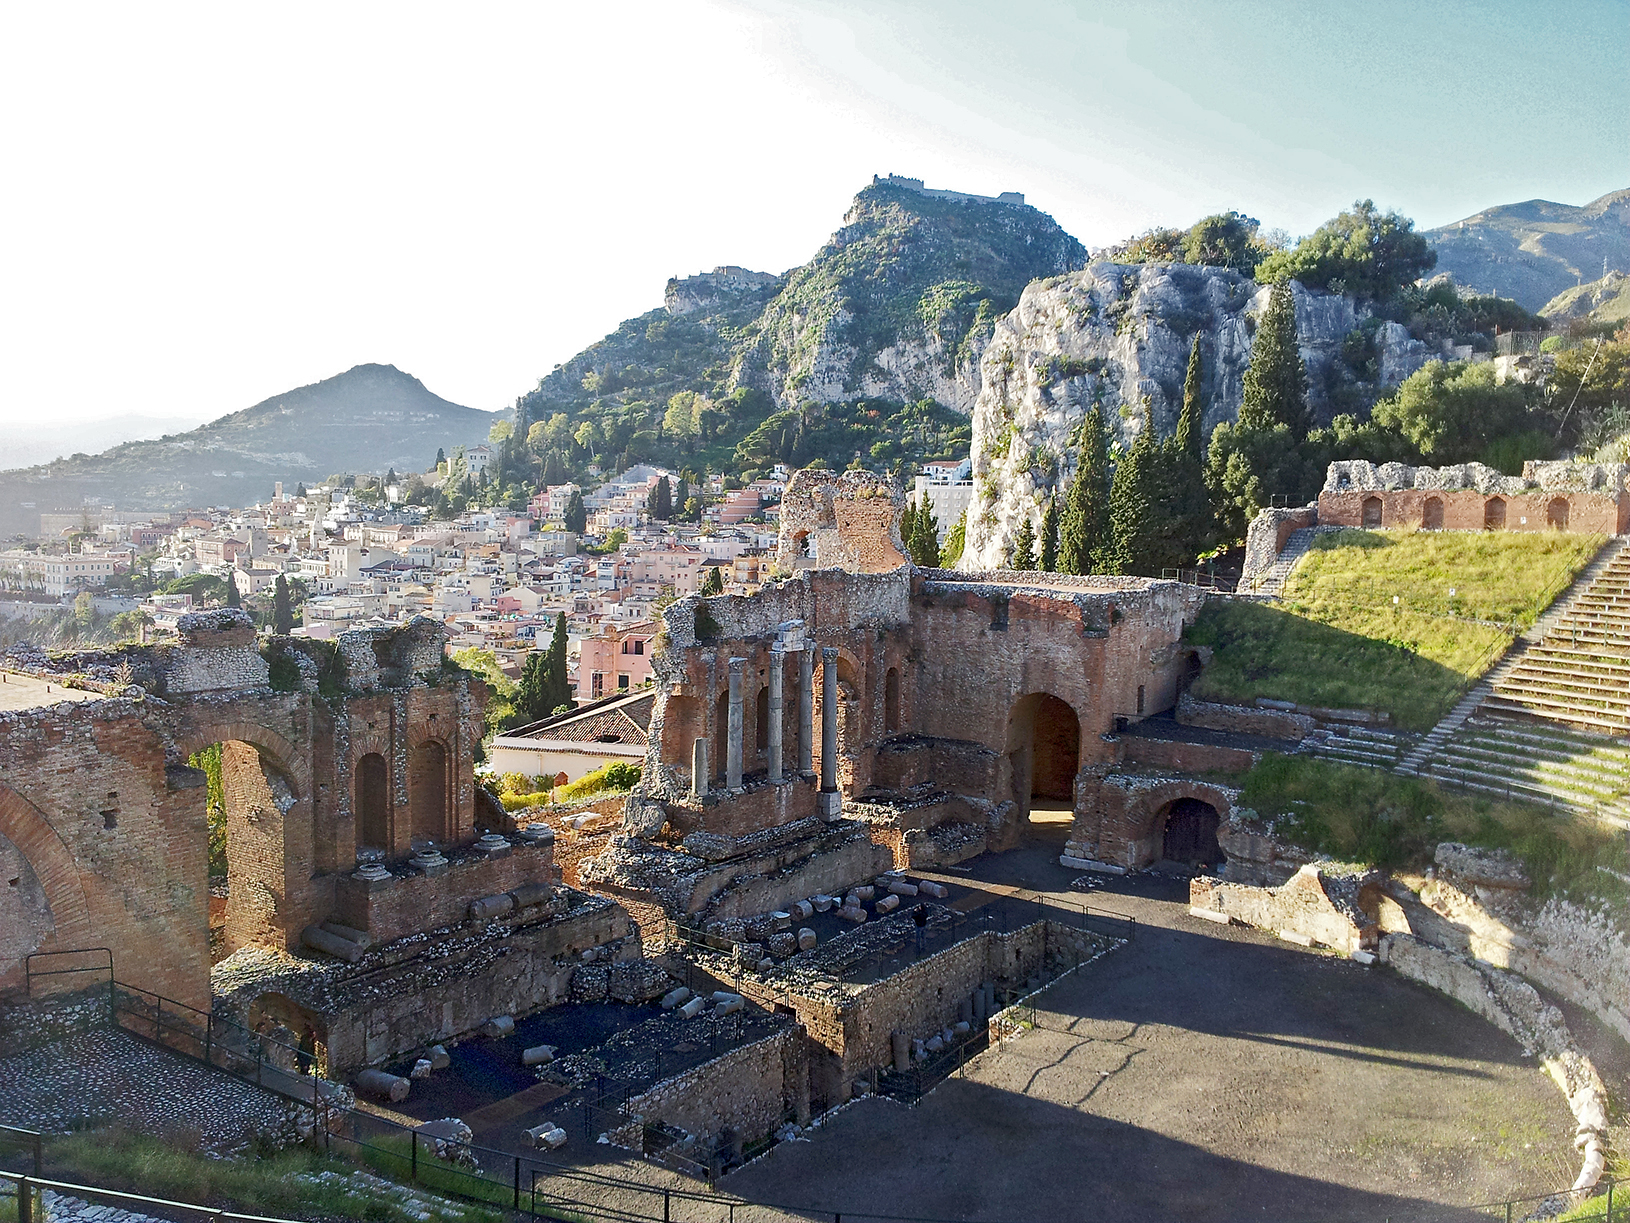 One day trip to Sicily from Malta